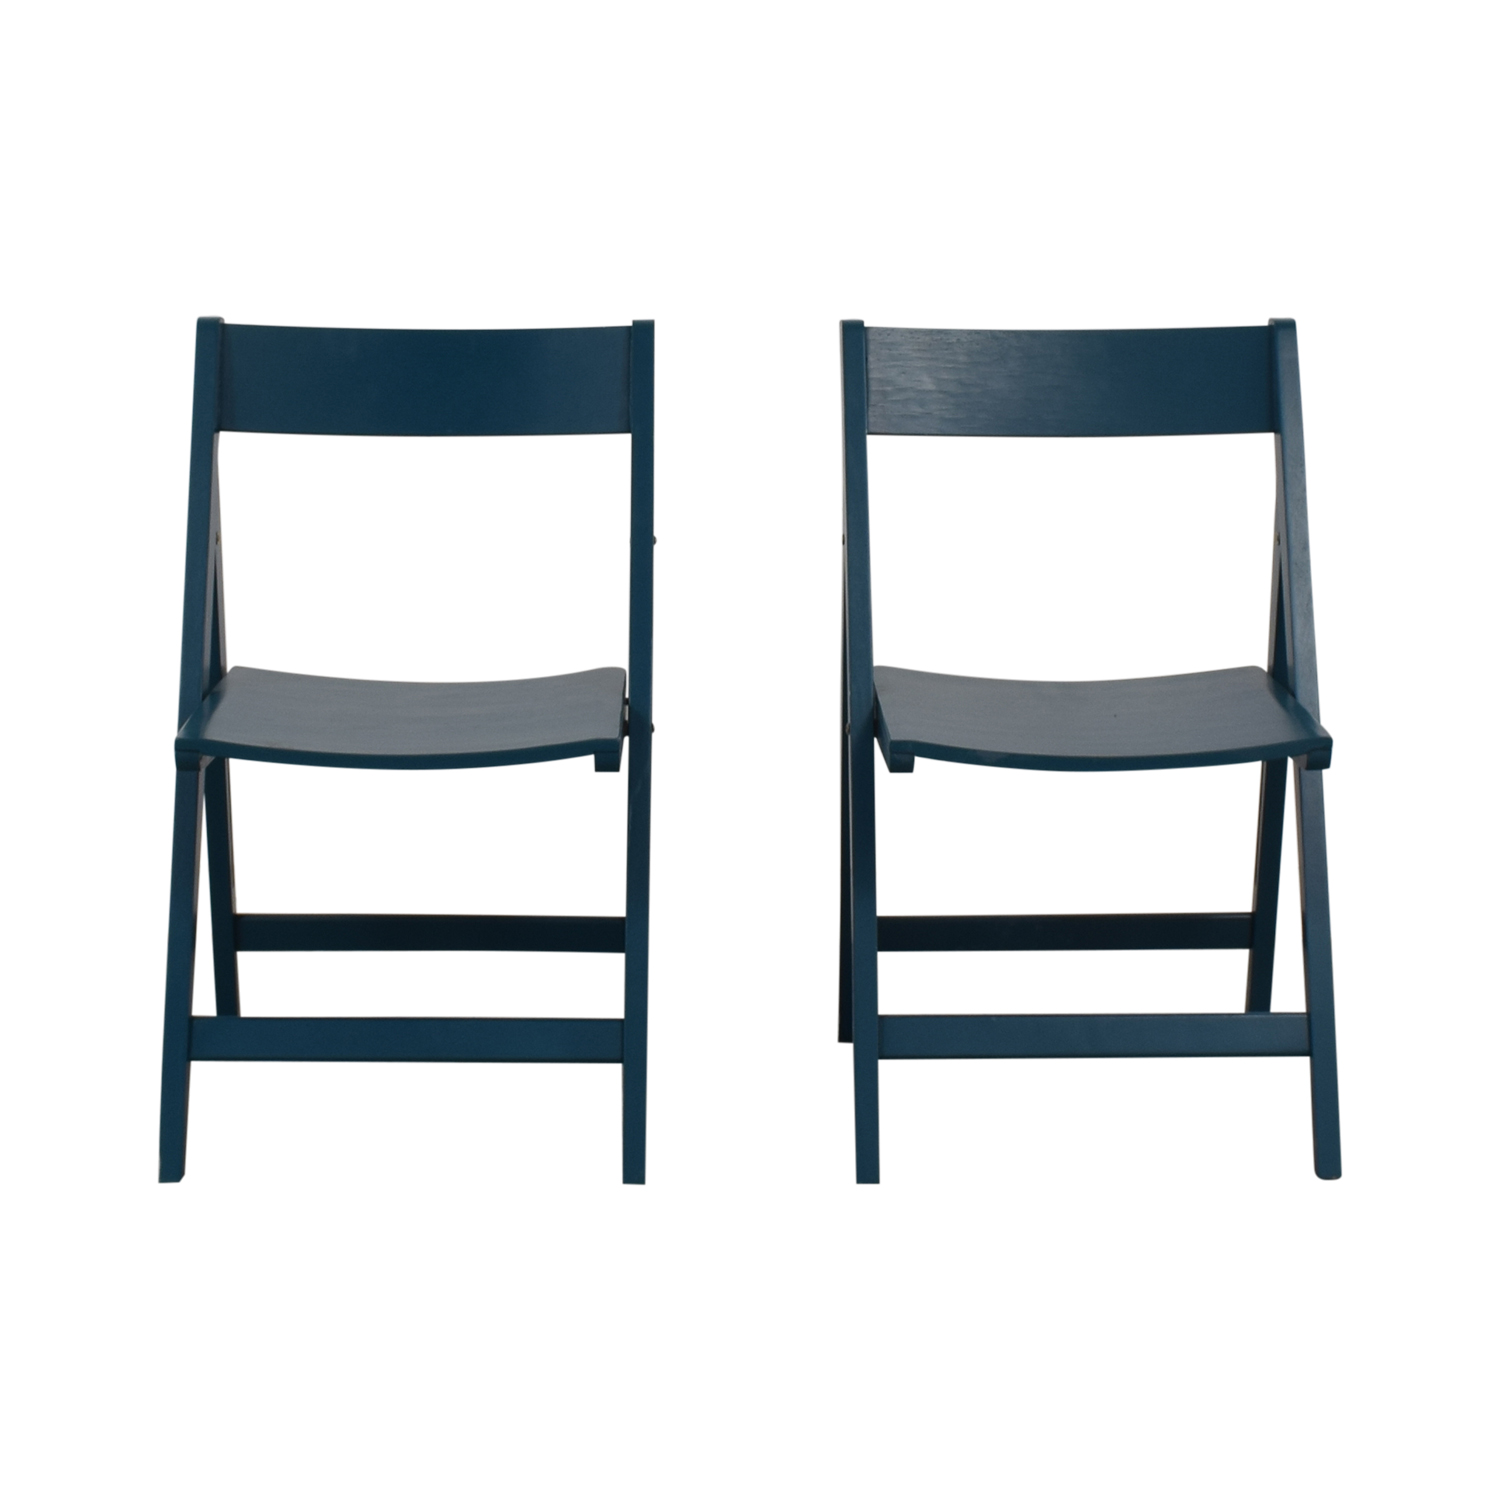 Blue Folding Chairs / Accent Chairs